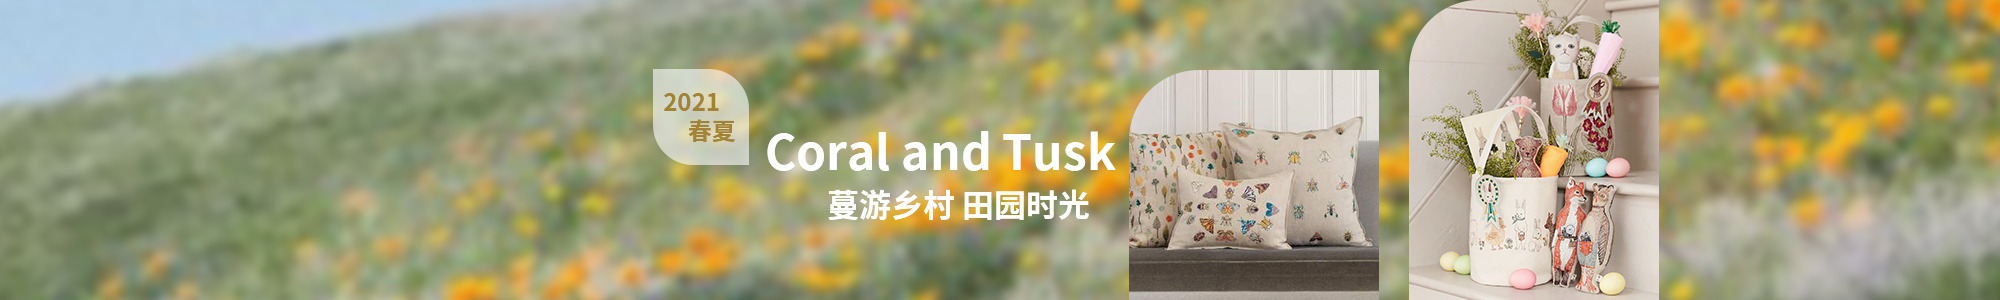 Coral and Tusk 田园时光